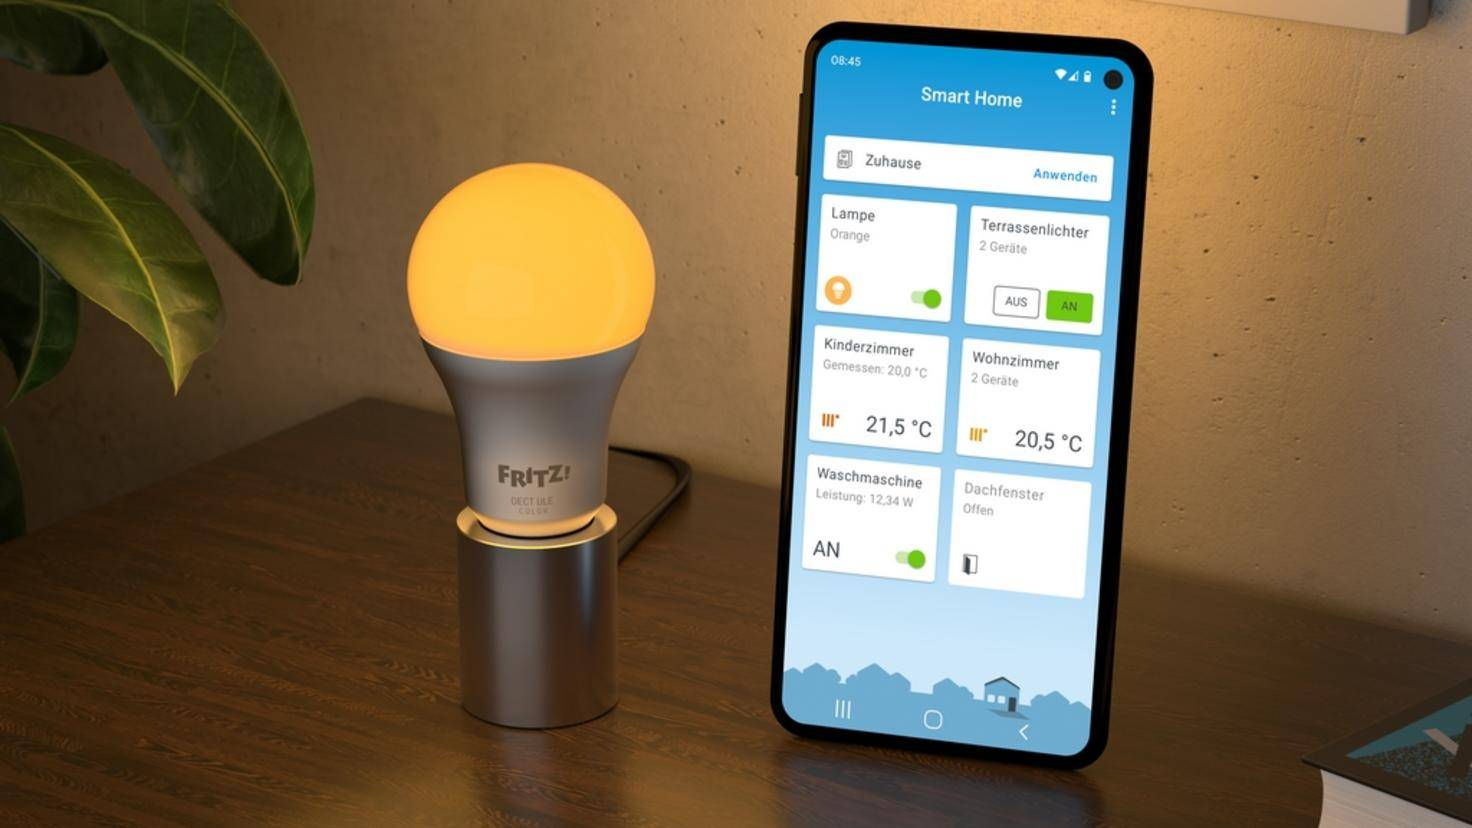 FRITZ! DECT 500 and FRITZ! App Smart Home